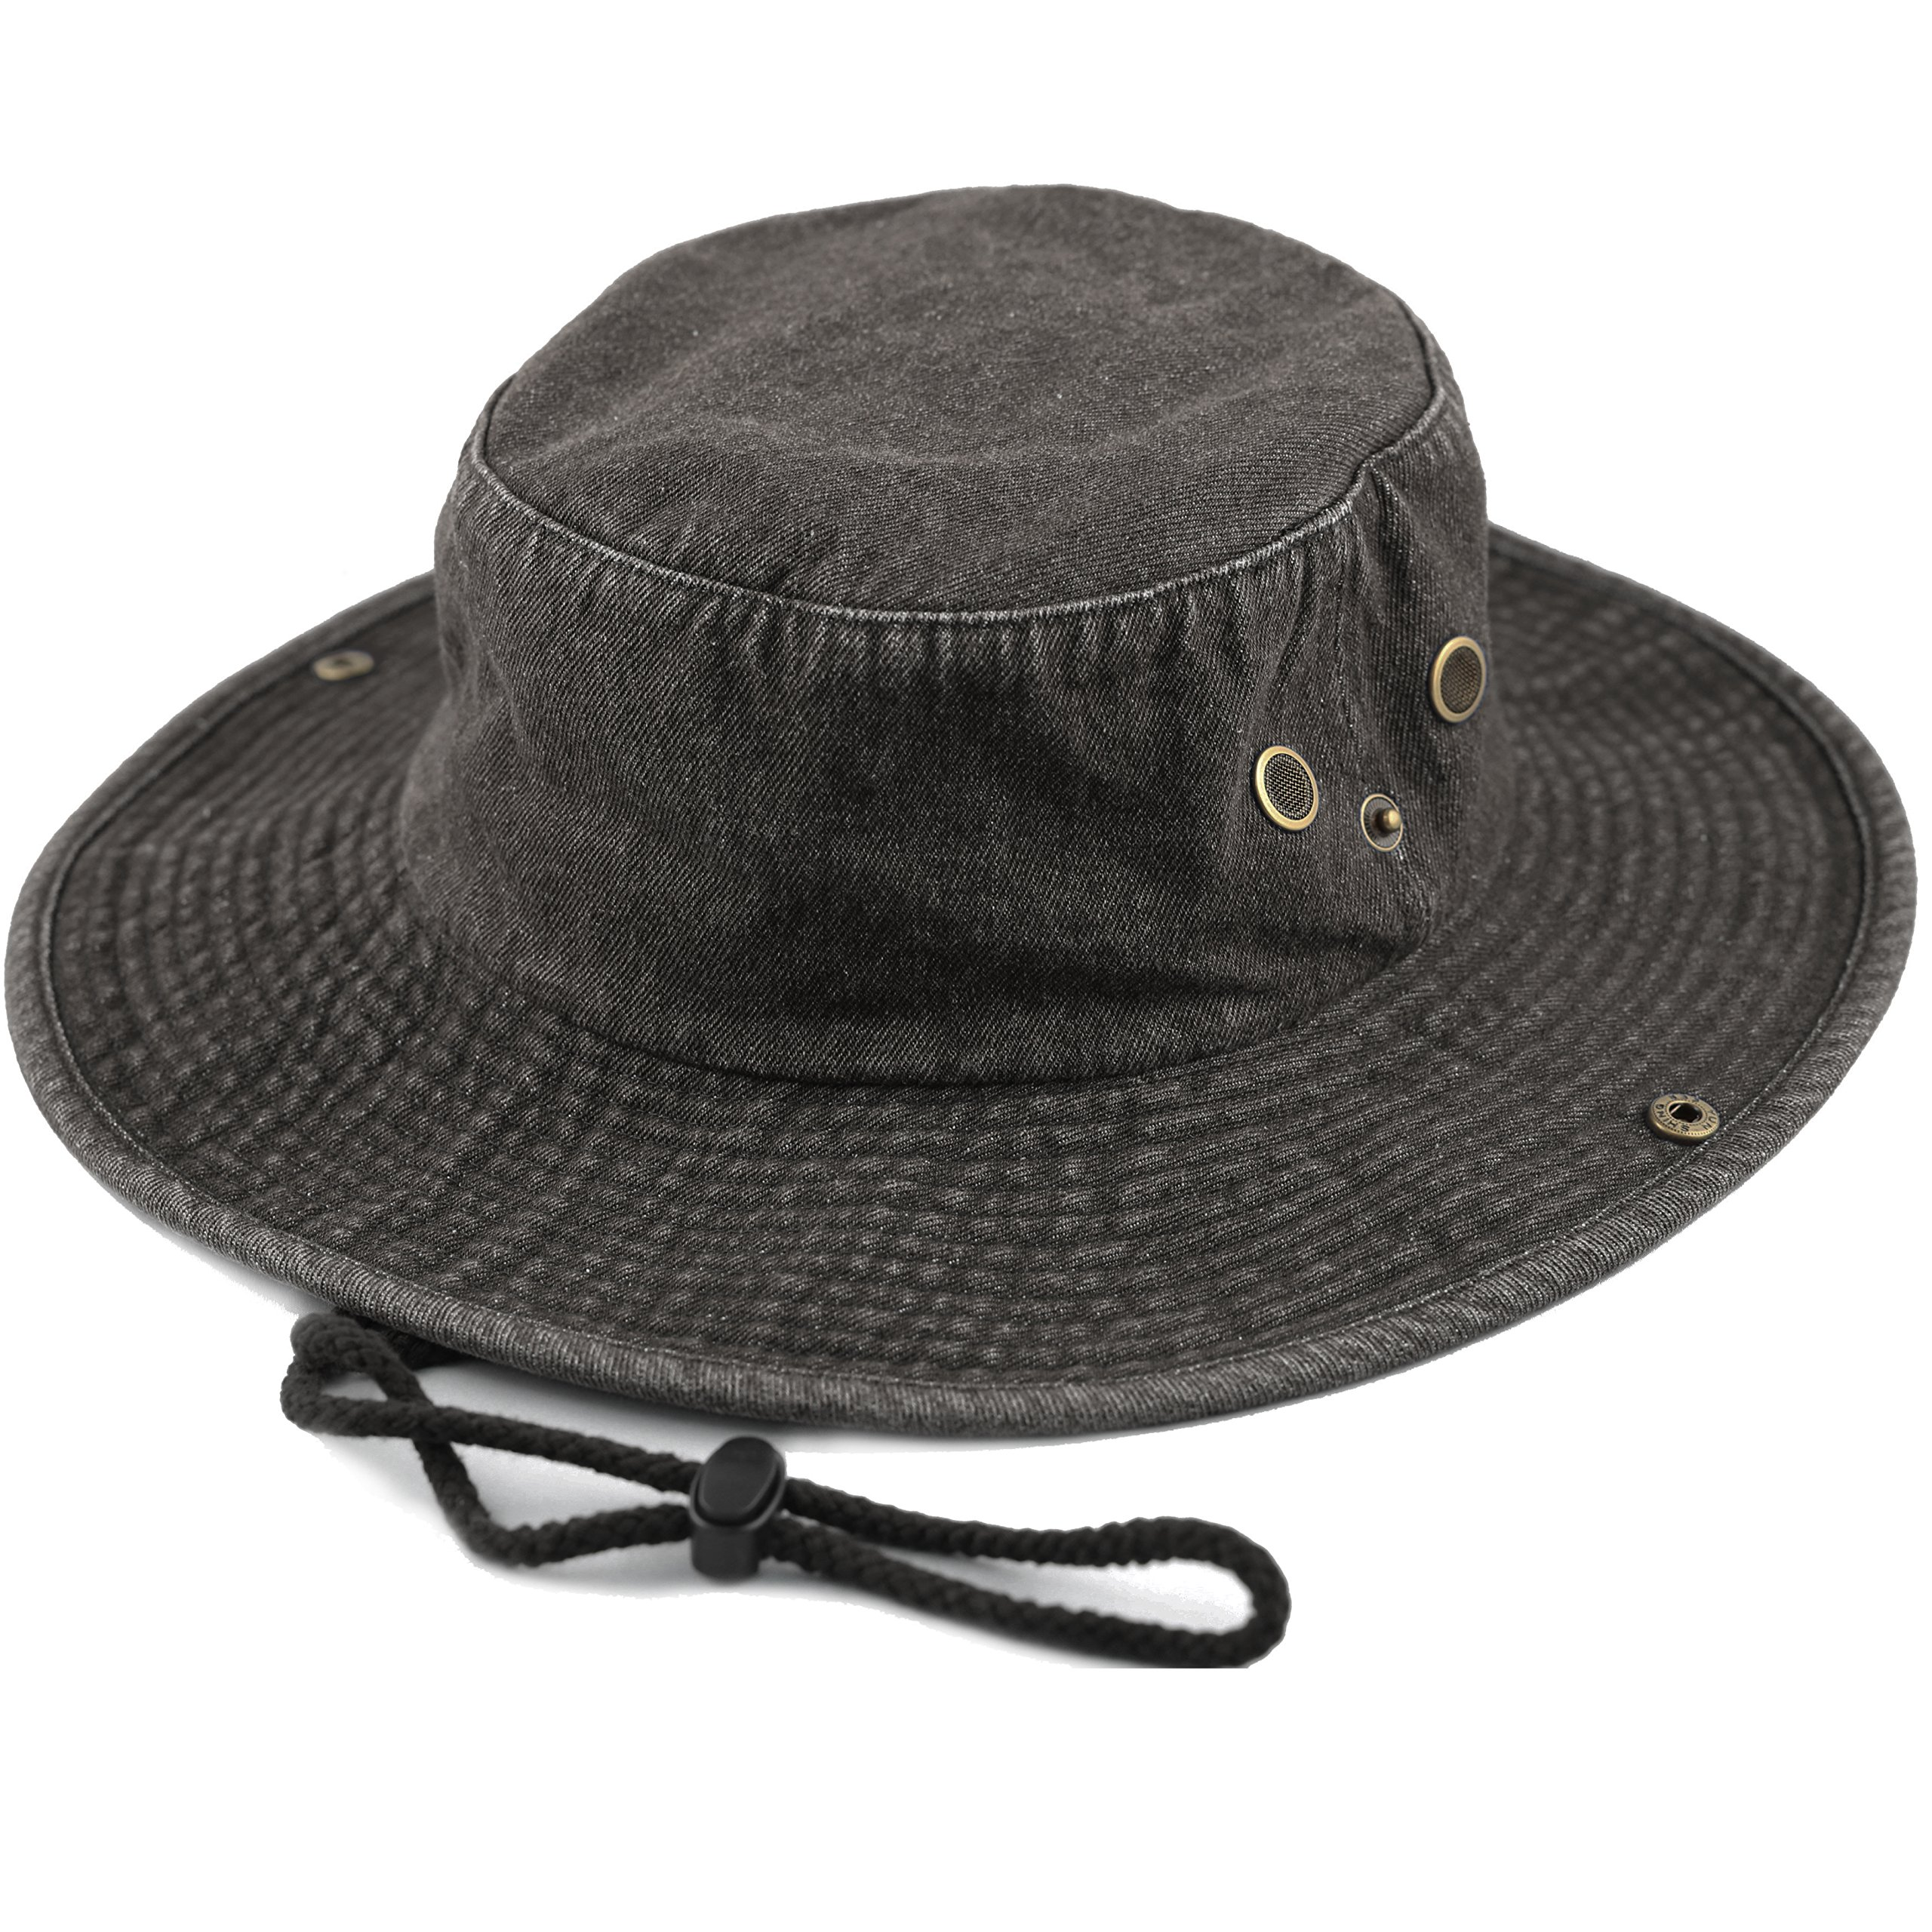 THE HAT DEPOT 300N1510 Wide Brim Foldable Double-Sided Outdoor Boonie Bucket Hat (S/M, Black Denim)